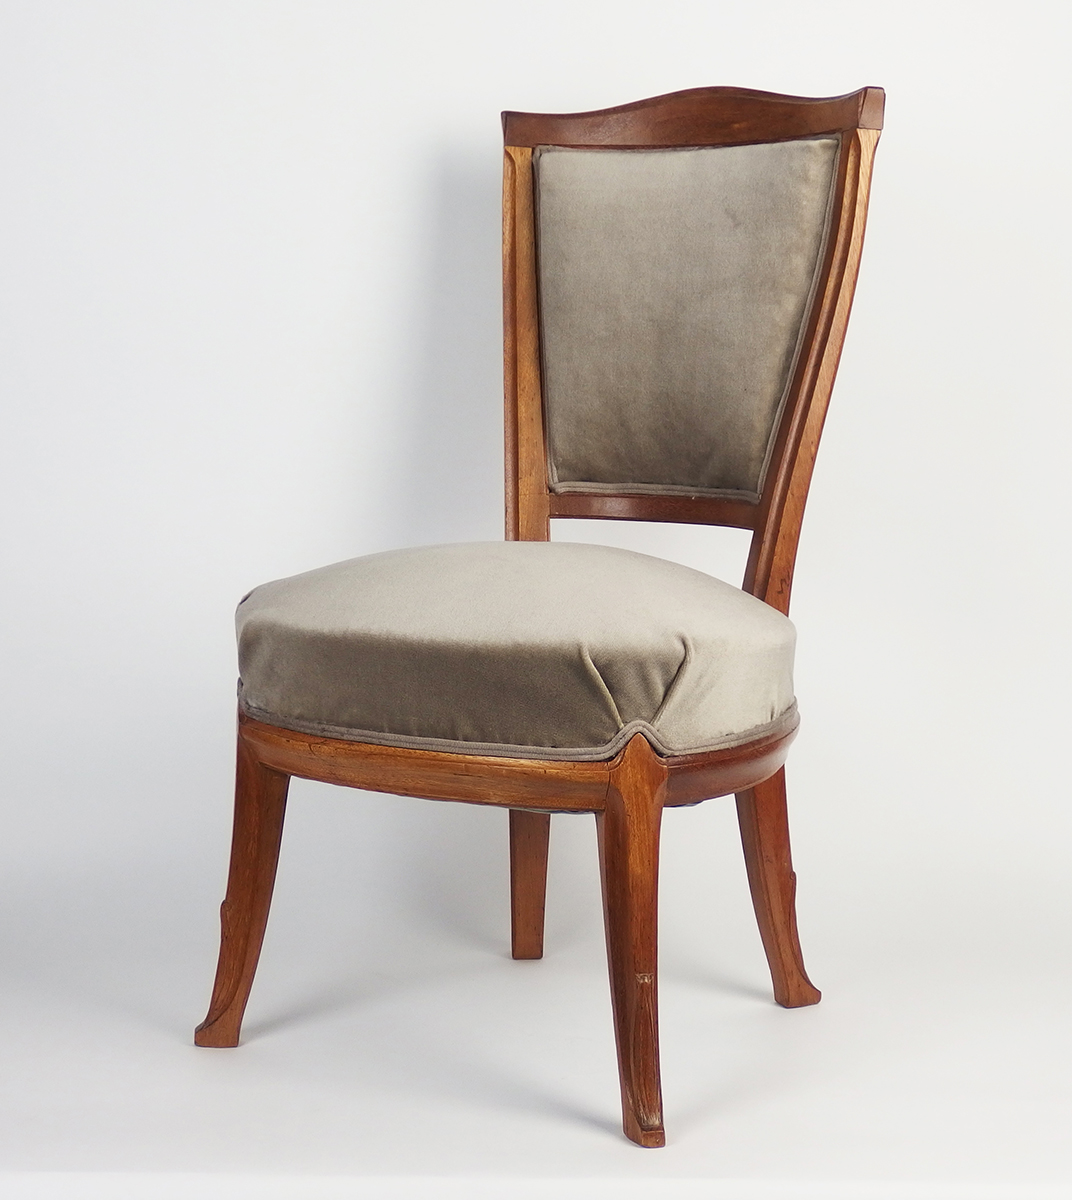 Art Nouveau Chair Attributed To Tony Selmersheim